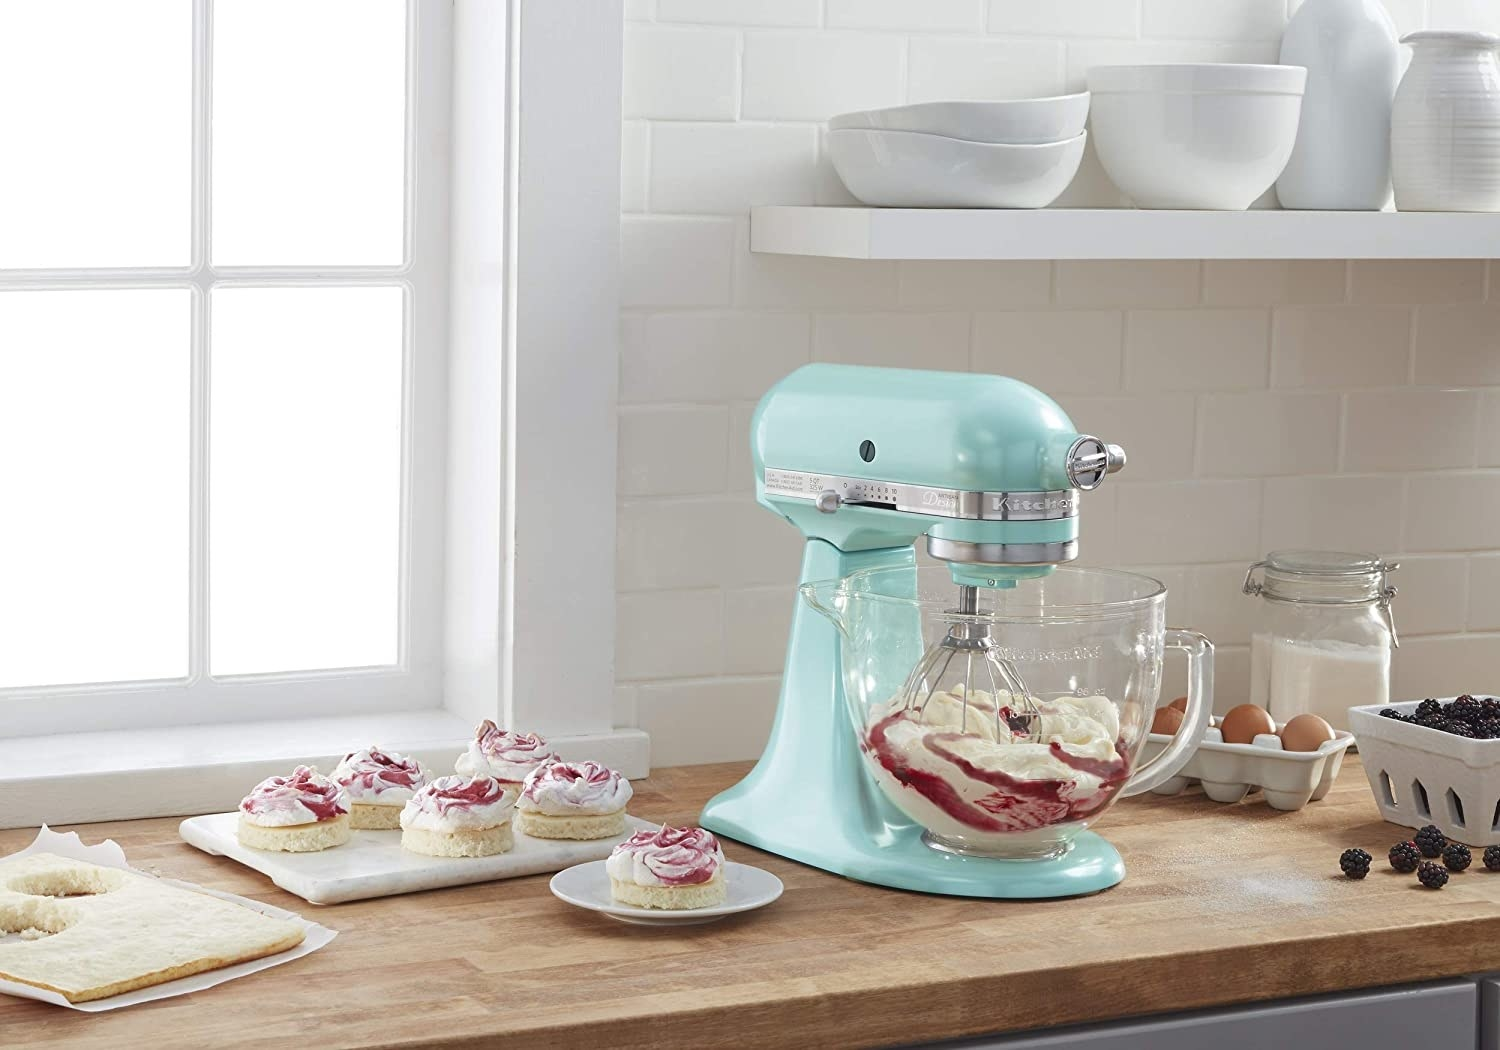 A stand mixer with icing in the bowl and other little biscuits with icing on top next to it